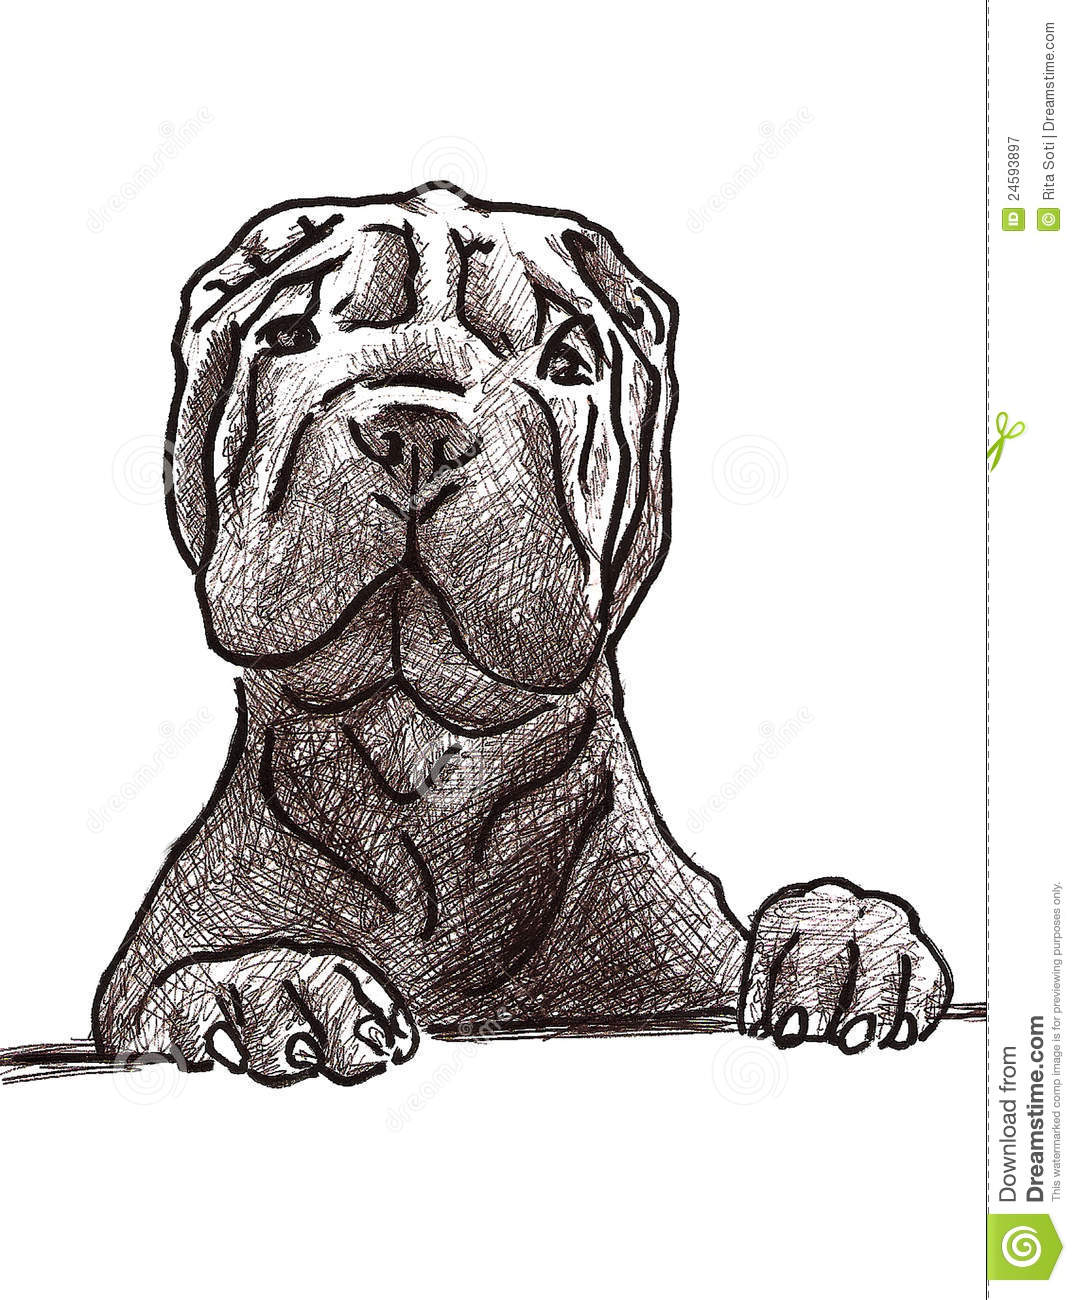 Sharpei Sketch Royalty Free Stock Photography Image